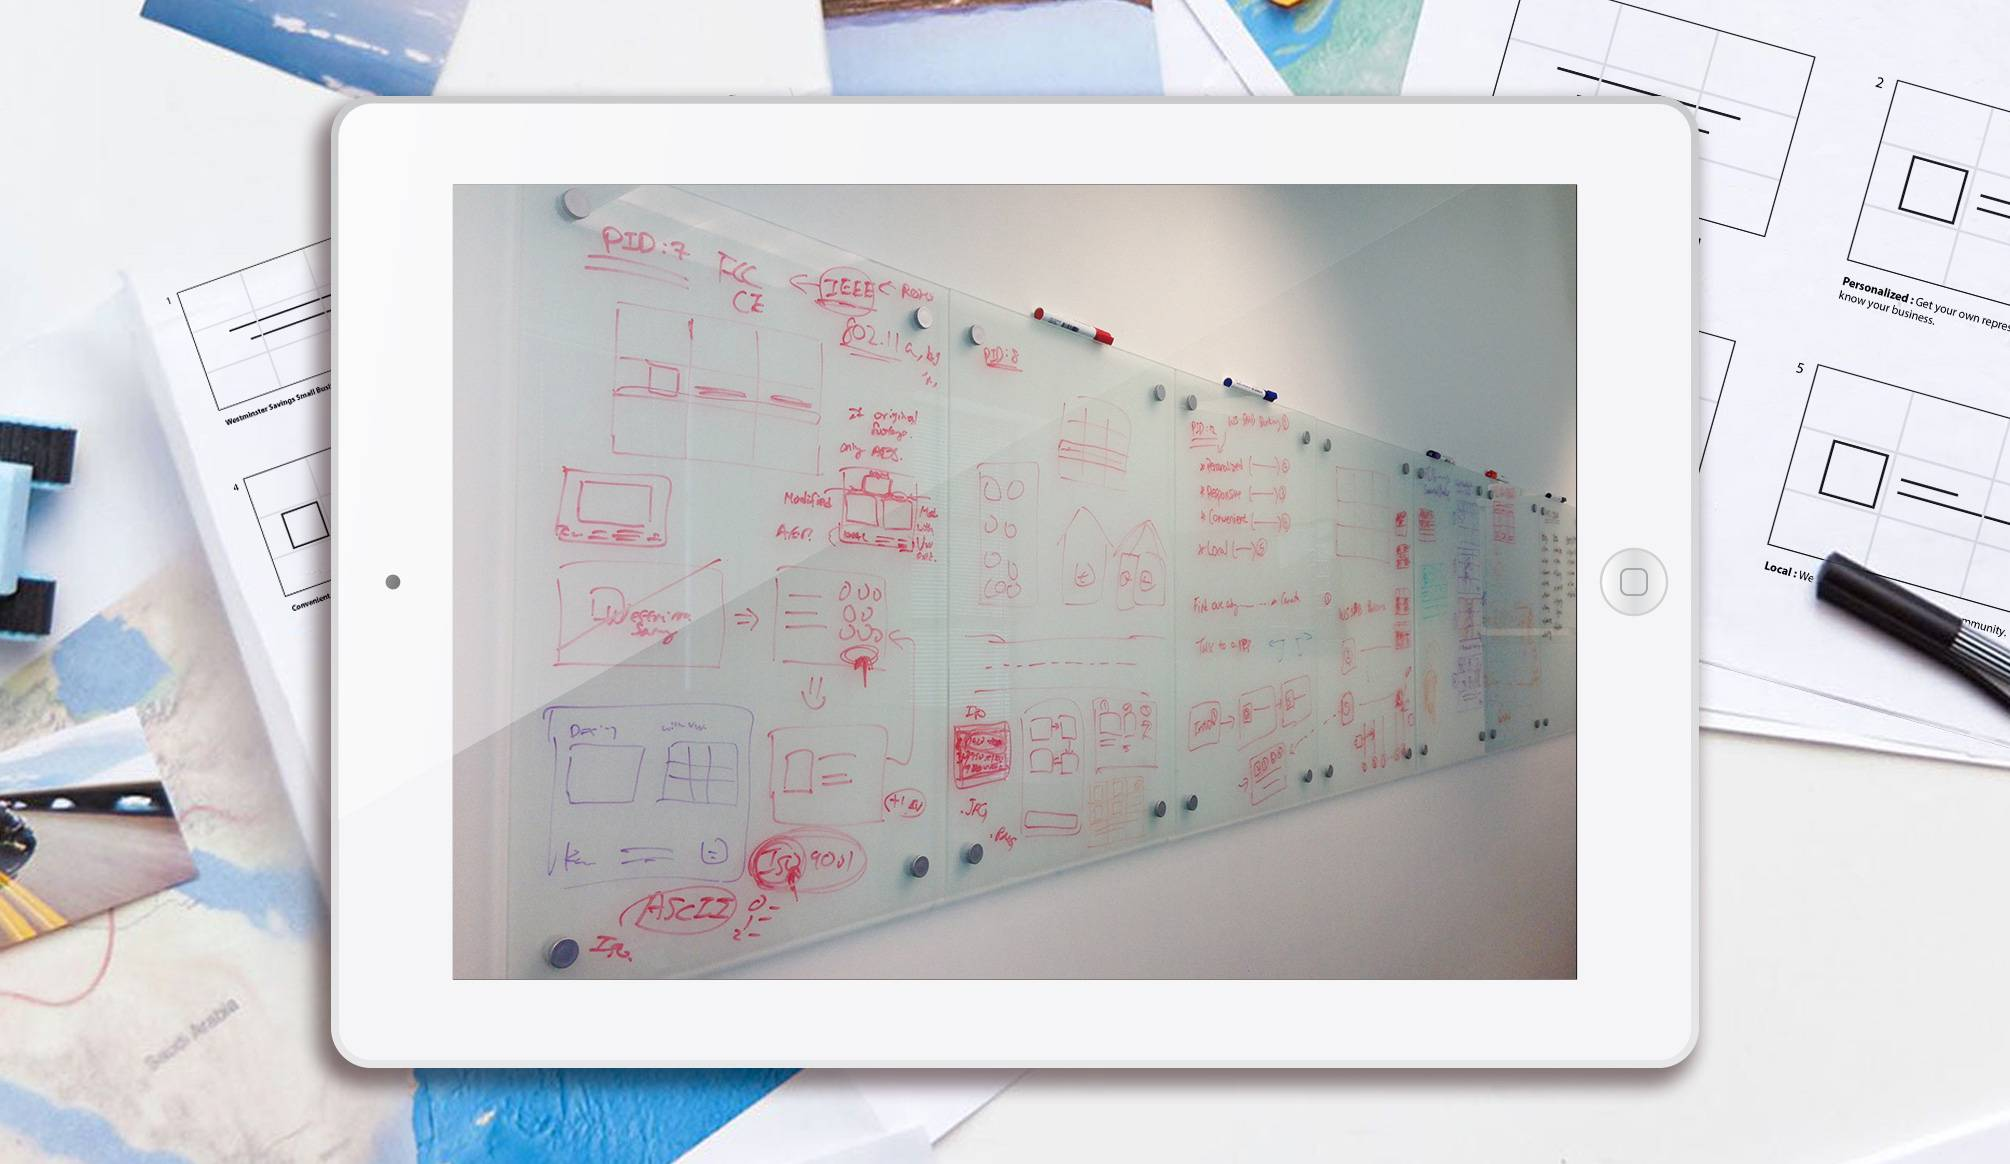 nexsigns graphic design services - ideating process